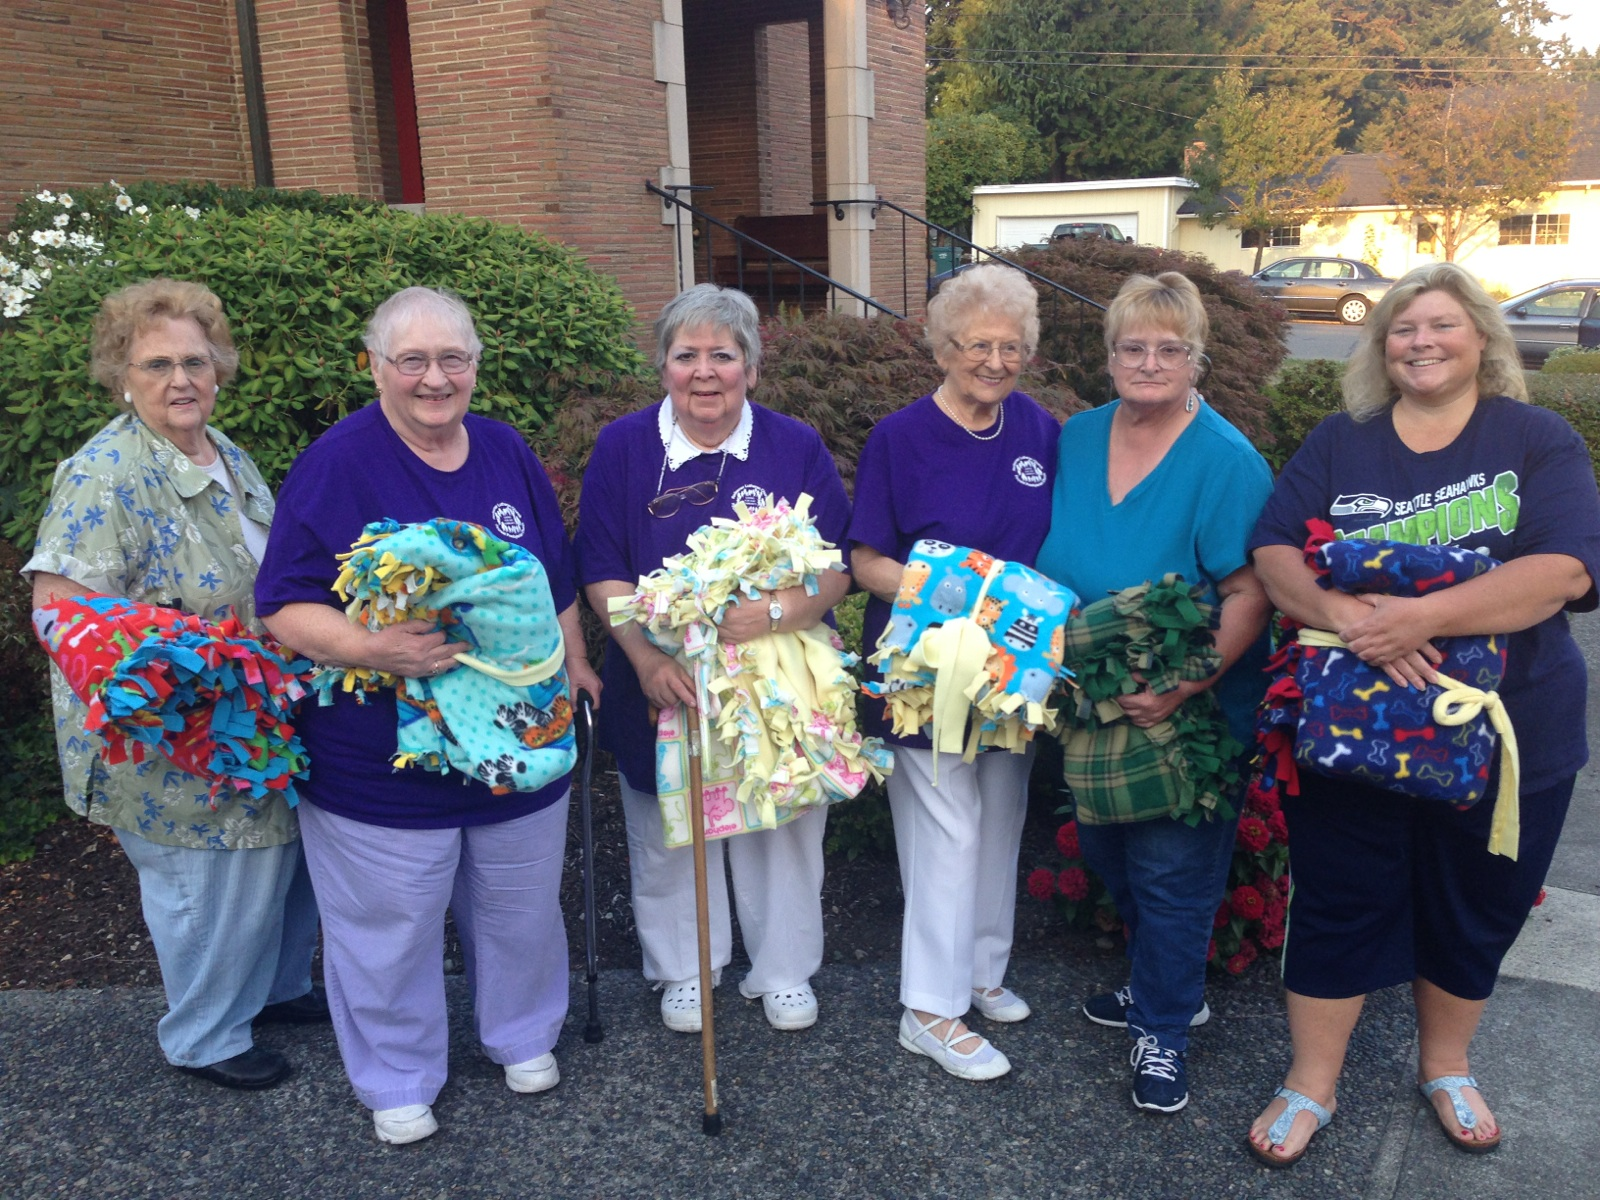 September - The Knotty Ladies, Fircrest Presbyterian & Redeemer Lutheran ChurchThe Knotty Ladies, who frequently donate handmade baby blankets to Step By Step, called our office to ask if they could include us in their churches' weekend of service event. On Sunday evening, September 21st, Cheryl and Sarah from Step By Step were honored to receive not only a new donation of beautiful blankets, but also diapers, baby wipes, formula and baby food that the two churches had gathered to donate to us. Thank you for your heartfelt generosity and your continued support of Step By Step and the many moms and babies we serve!